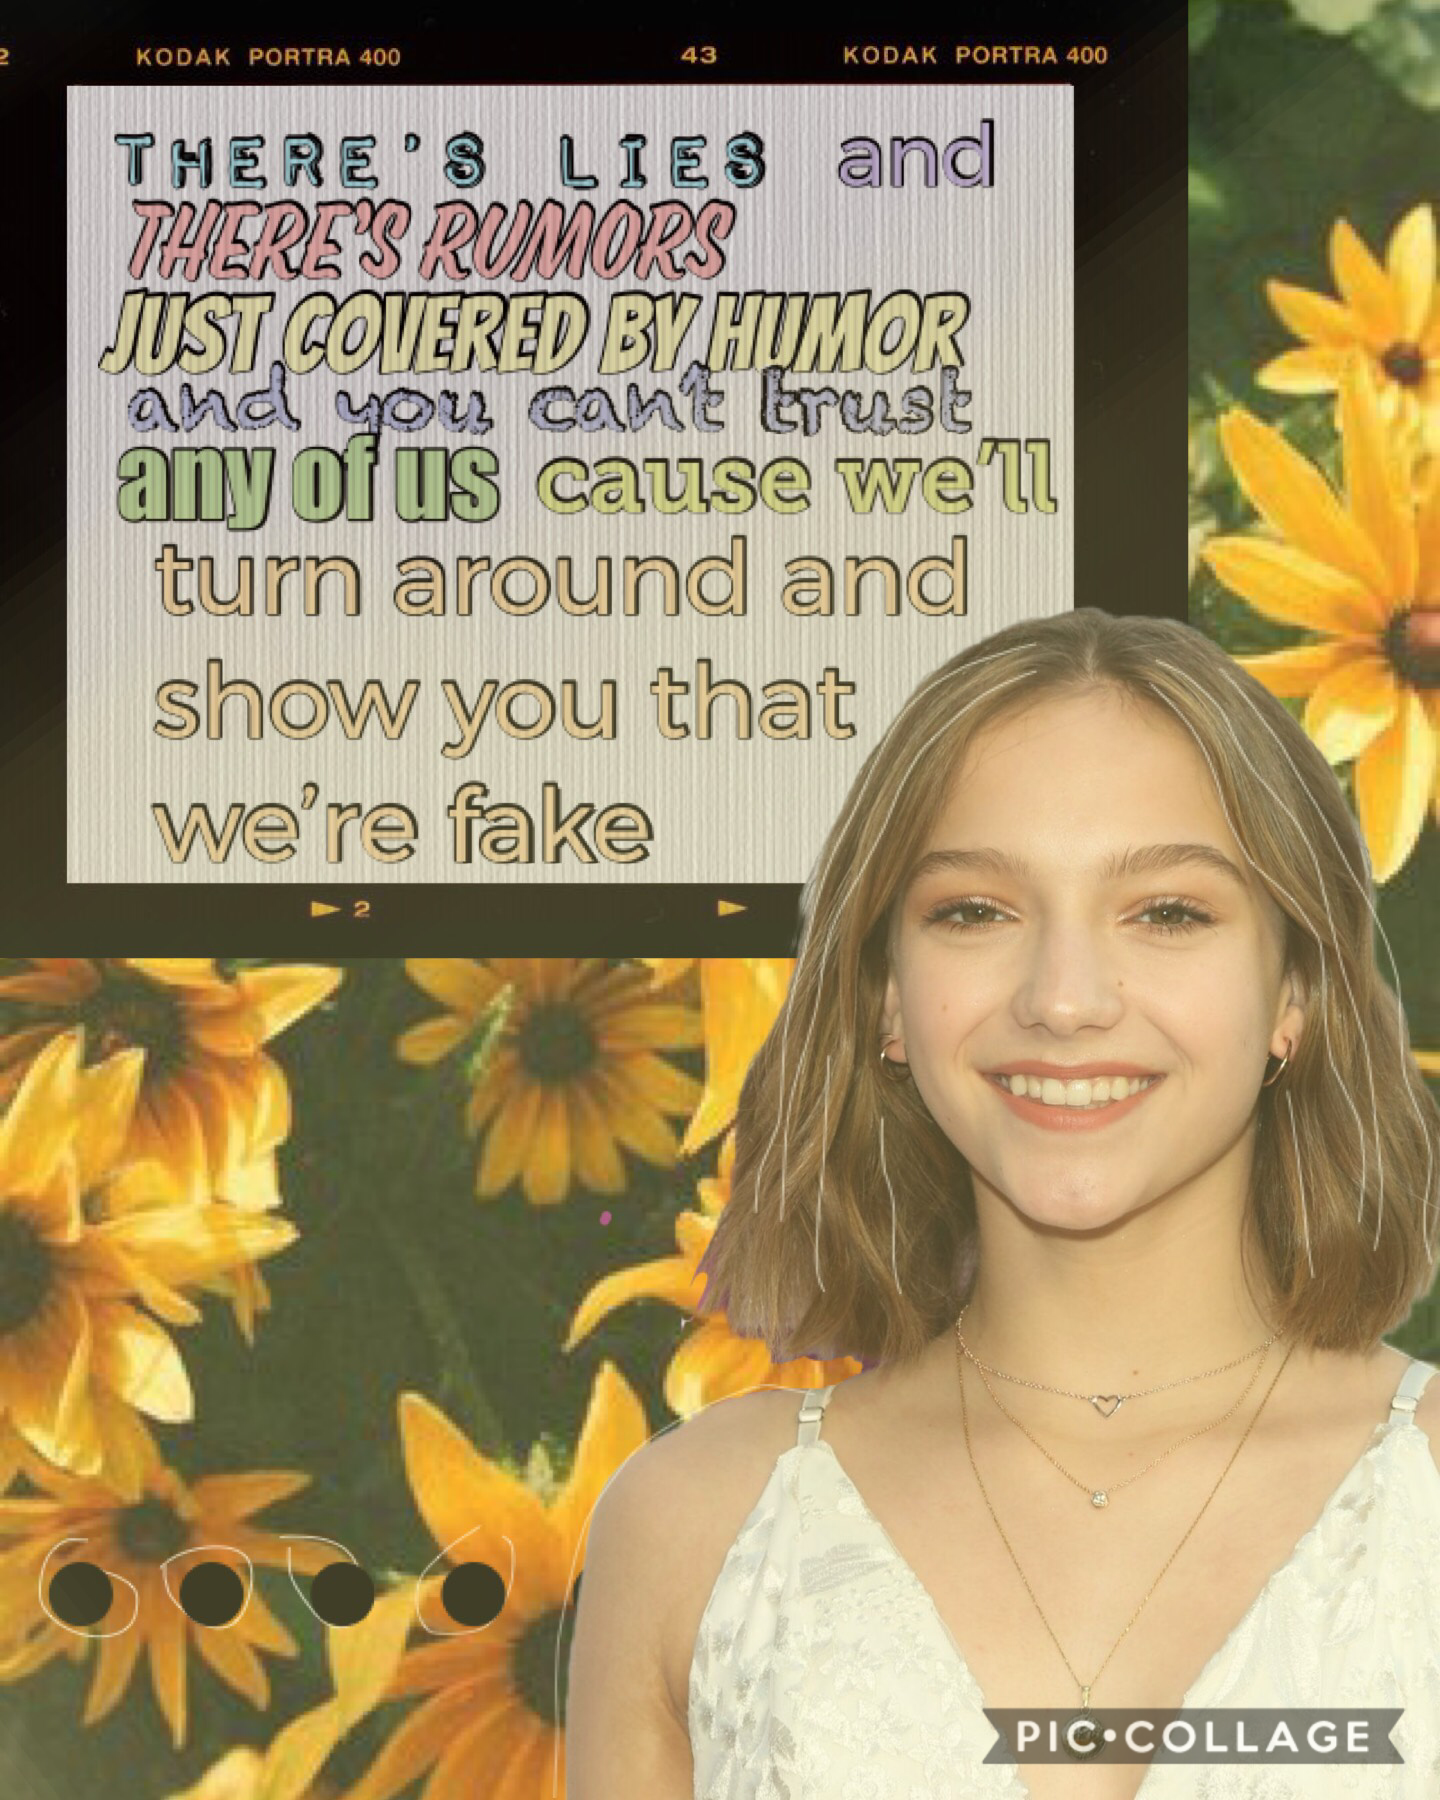 Jayden Bartels🙂 I love Jayden and all her songs and her personality! what's your favorite Jayden Bartels song? i haven't listened to her new one yet but i can't wait to!